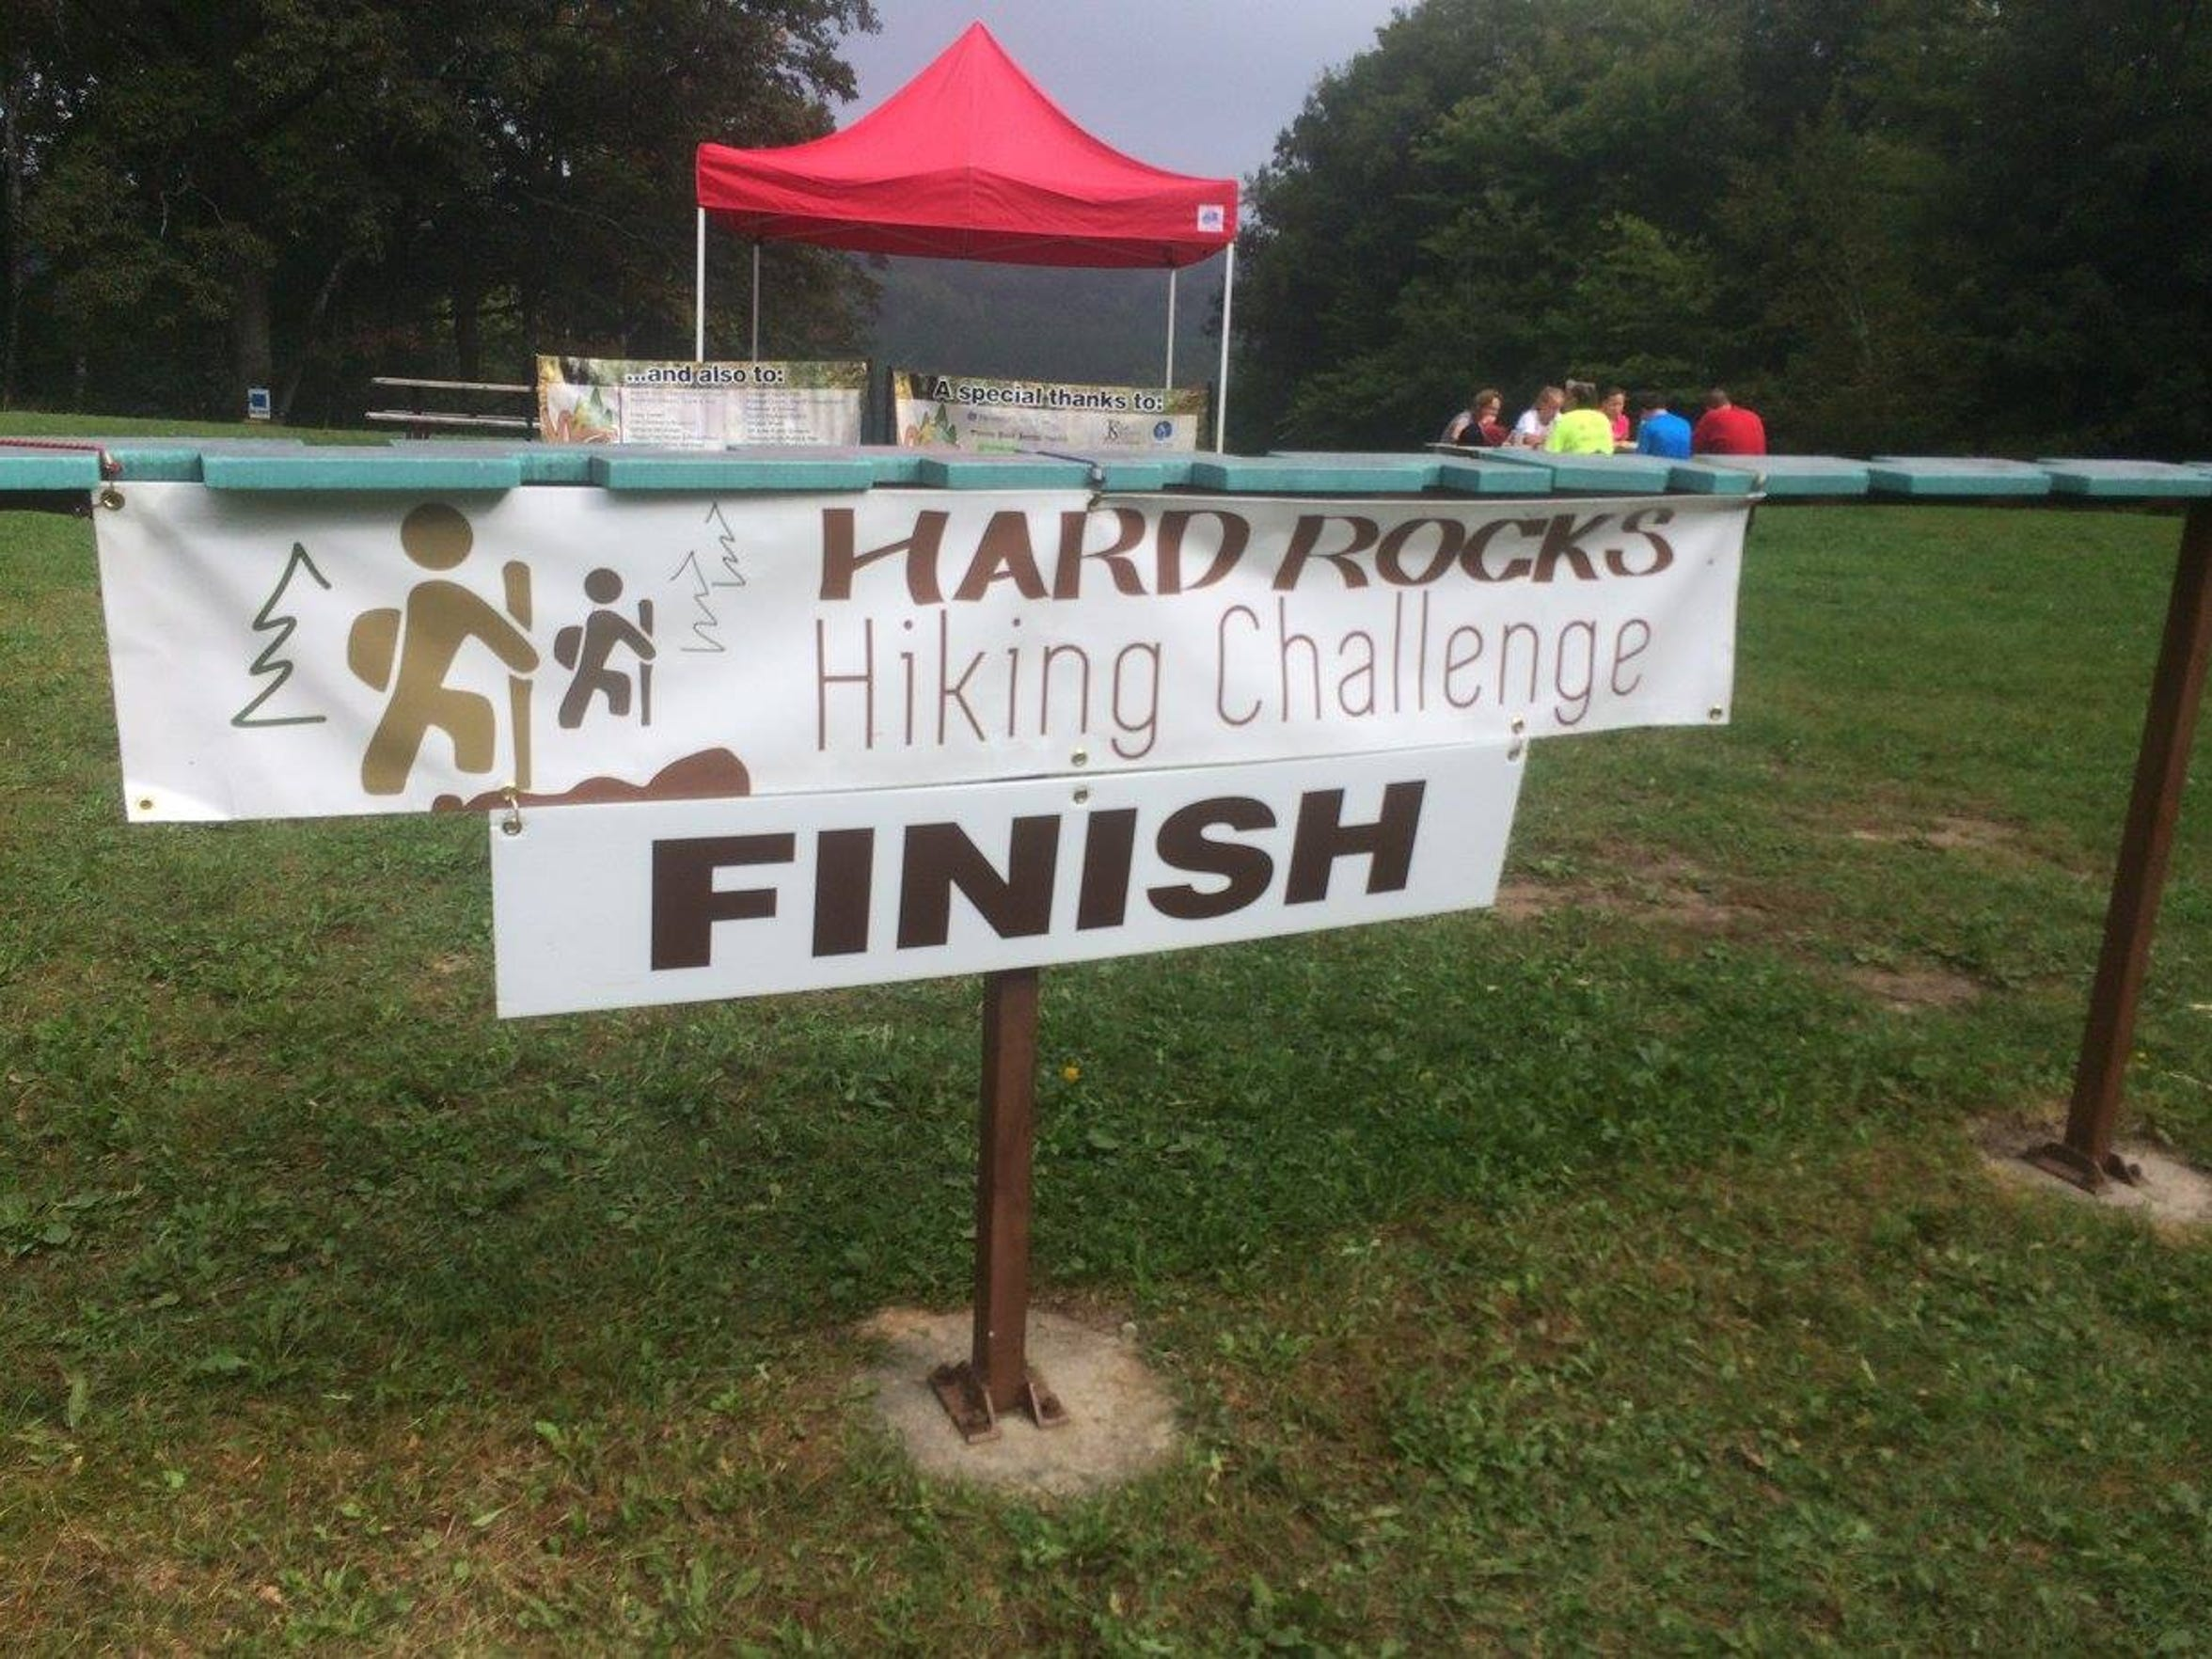 The Hard Rocks Hiking Challenge will take place on